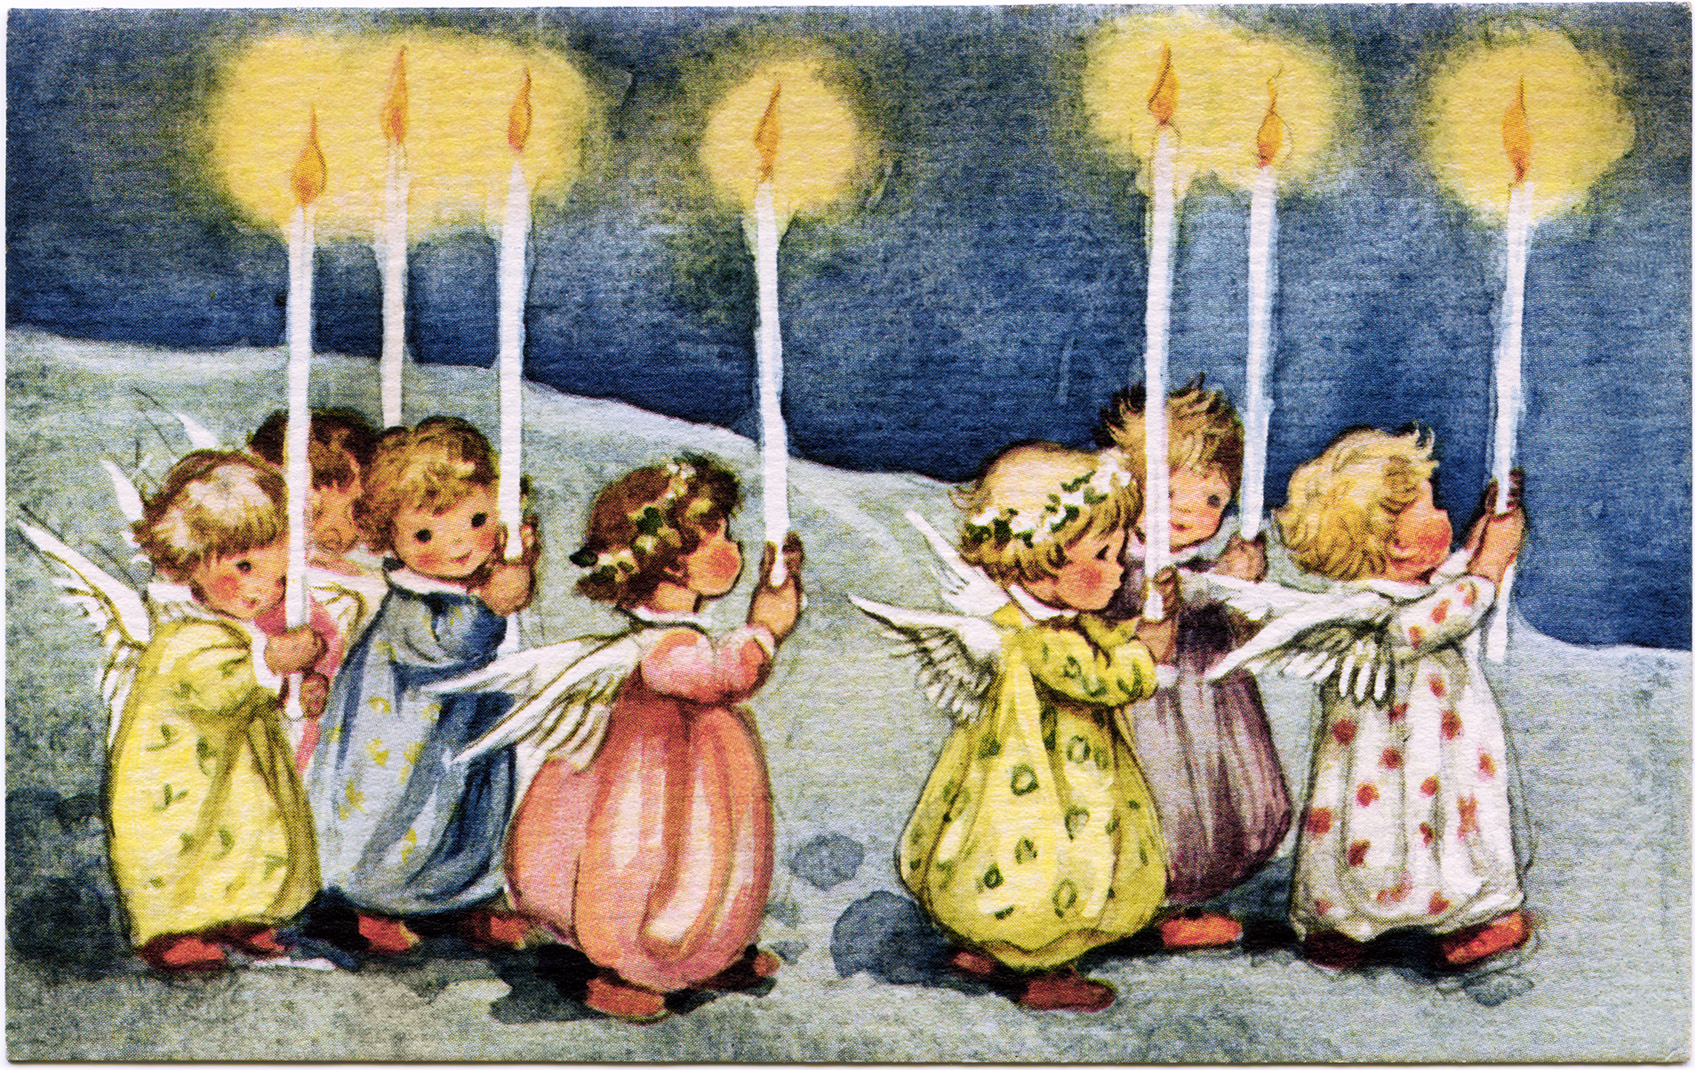 Little angels carrying candles vintage greeting card graphic card vintage angel clipart little angels with candles old fashioned christmas graphic printable holiday kristyandbryce Image collections